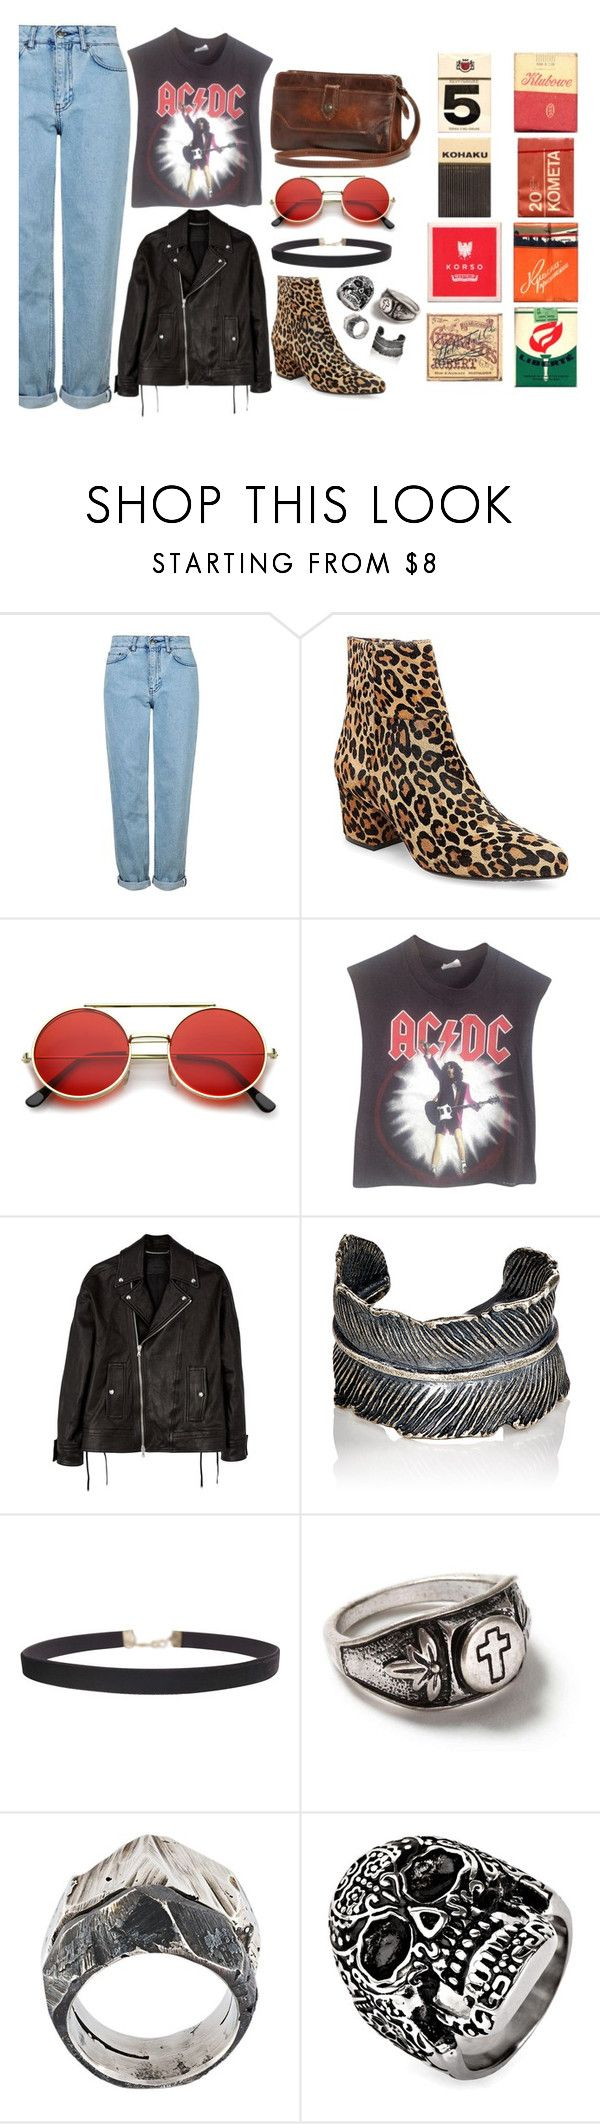 """""""you know, that is nothig, but sometimes is everything"""" by eszterk9 on Polyvore featuring Topshop, Steven by Steve Madden, ZeroUV, Vintage, Diesel Black Gold, M. Cohen, Humble Chic, Topman, Lost & Found and West Coast Jewelry"""